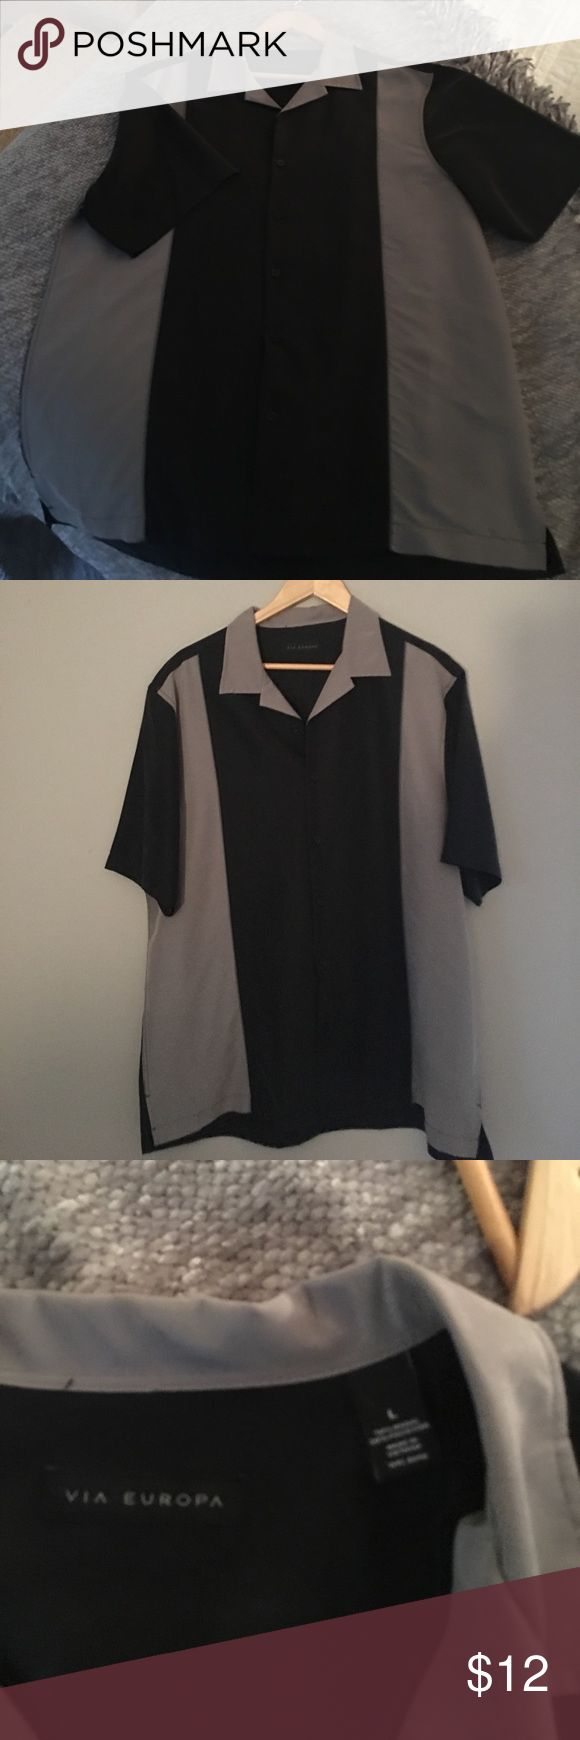 """Men's large short sleeve shirt I call this the """"Charlie Sheen"""" shirt!  It's grey and black and buttons down the front.  Nice men's shirt and goes with anything. Via Europa Shirts Casual Button Down Shirts"""